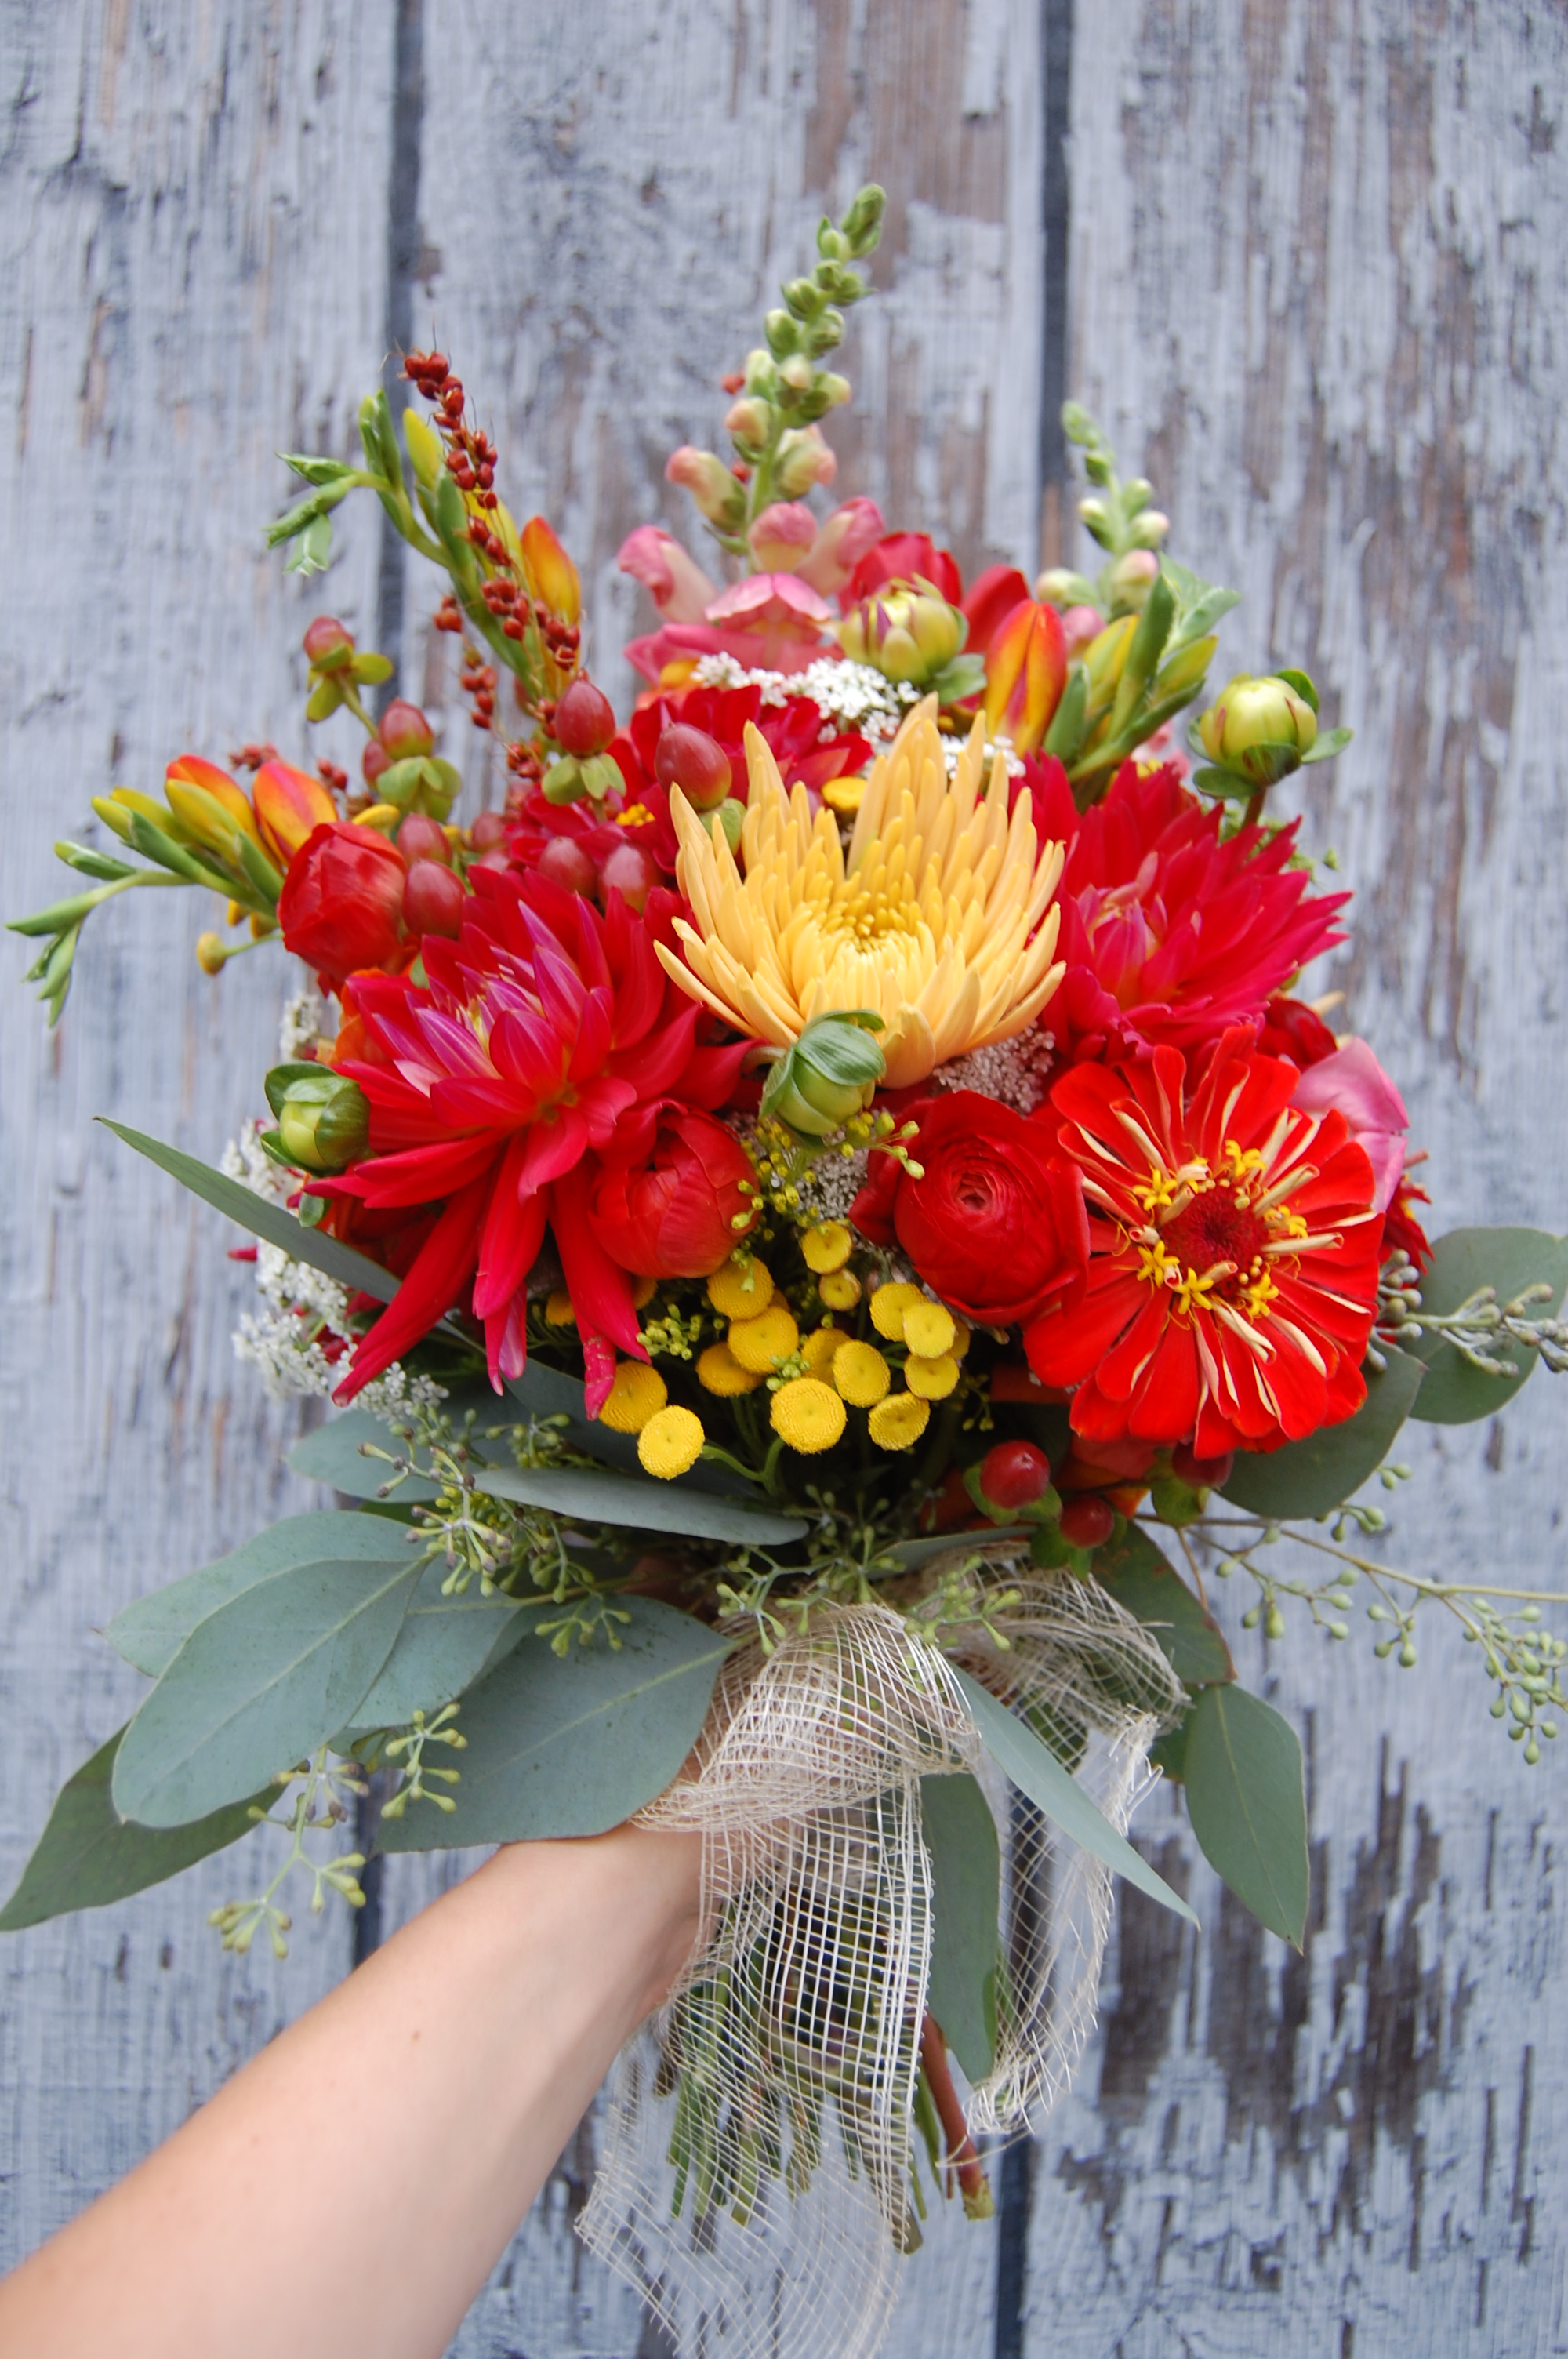 dahlias, zinnias, snapdragons, button yarrow